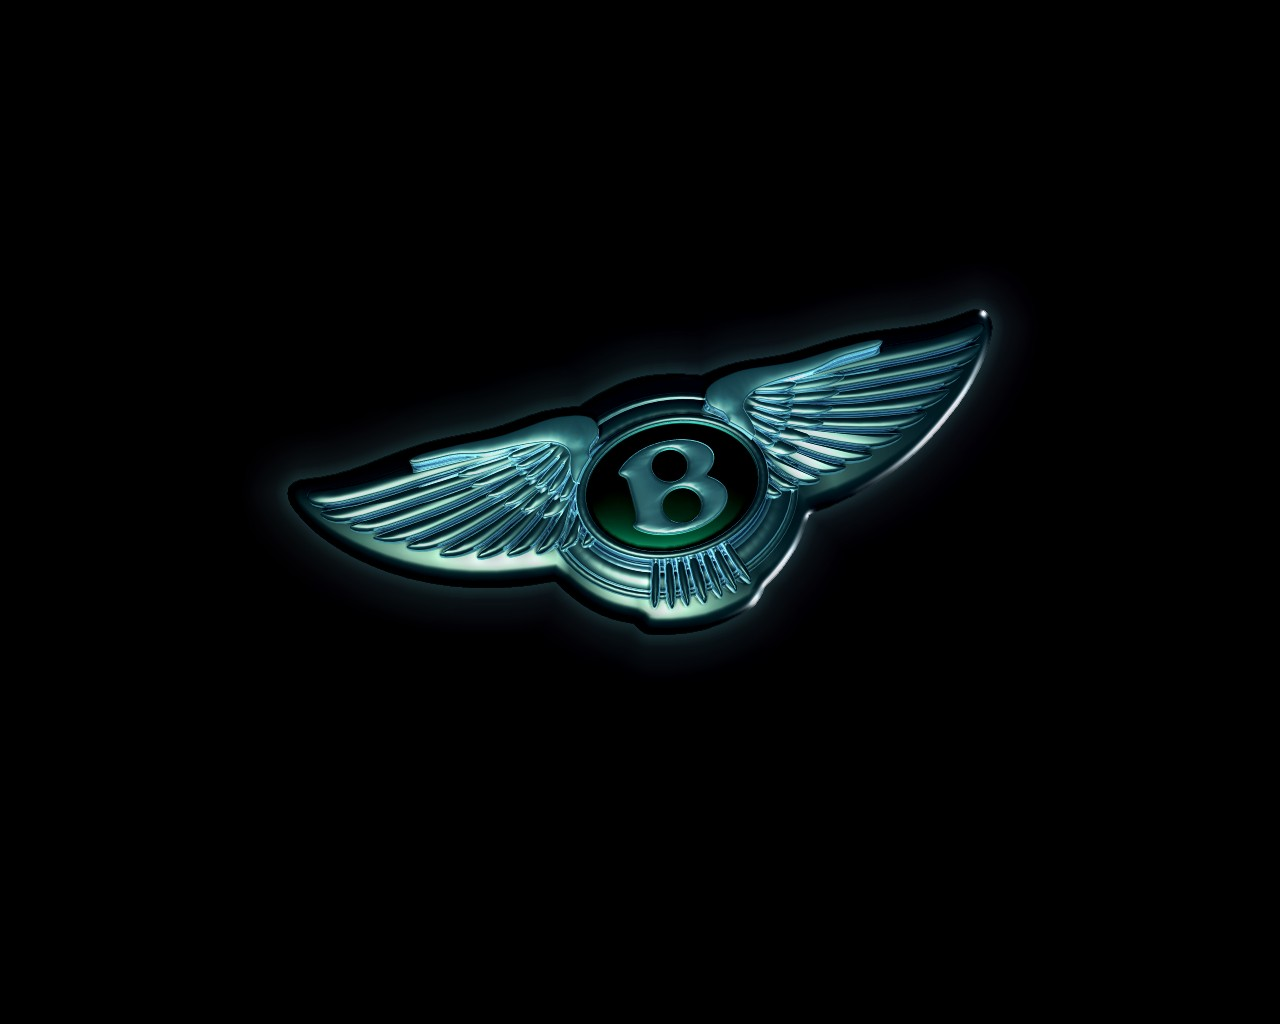 bentley logo wallpaper 28749